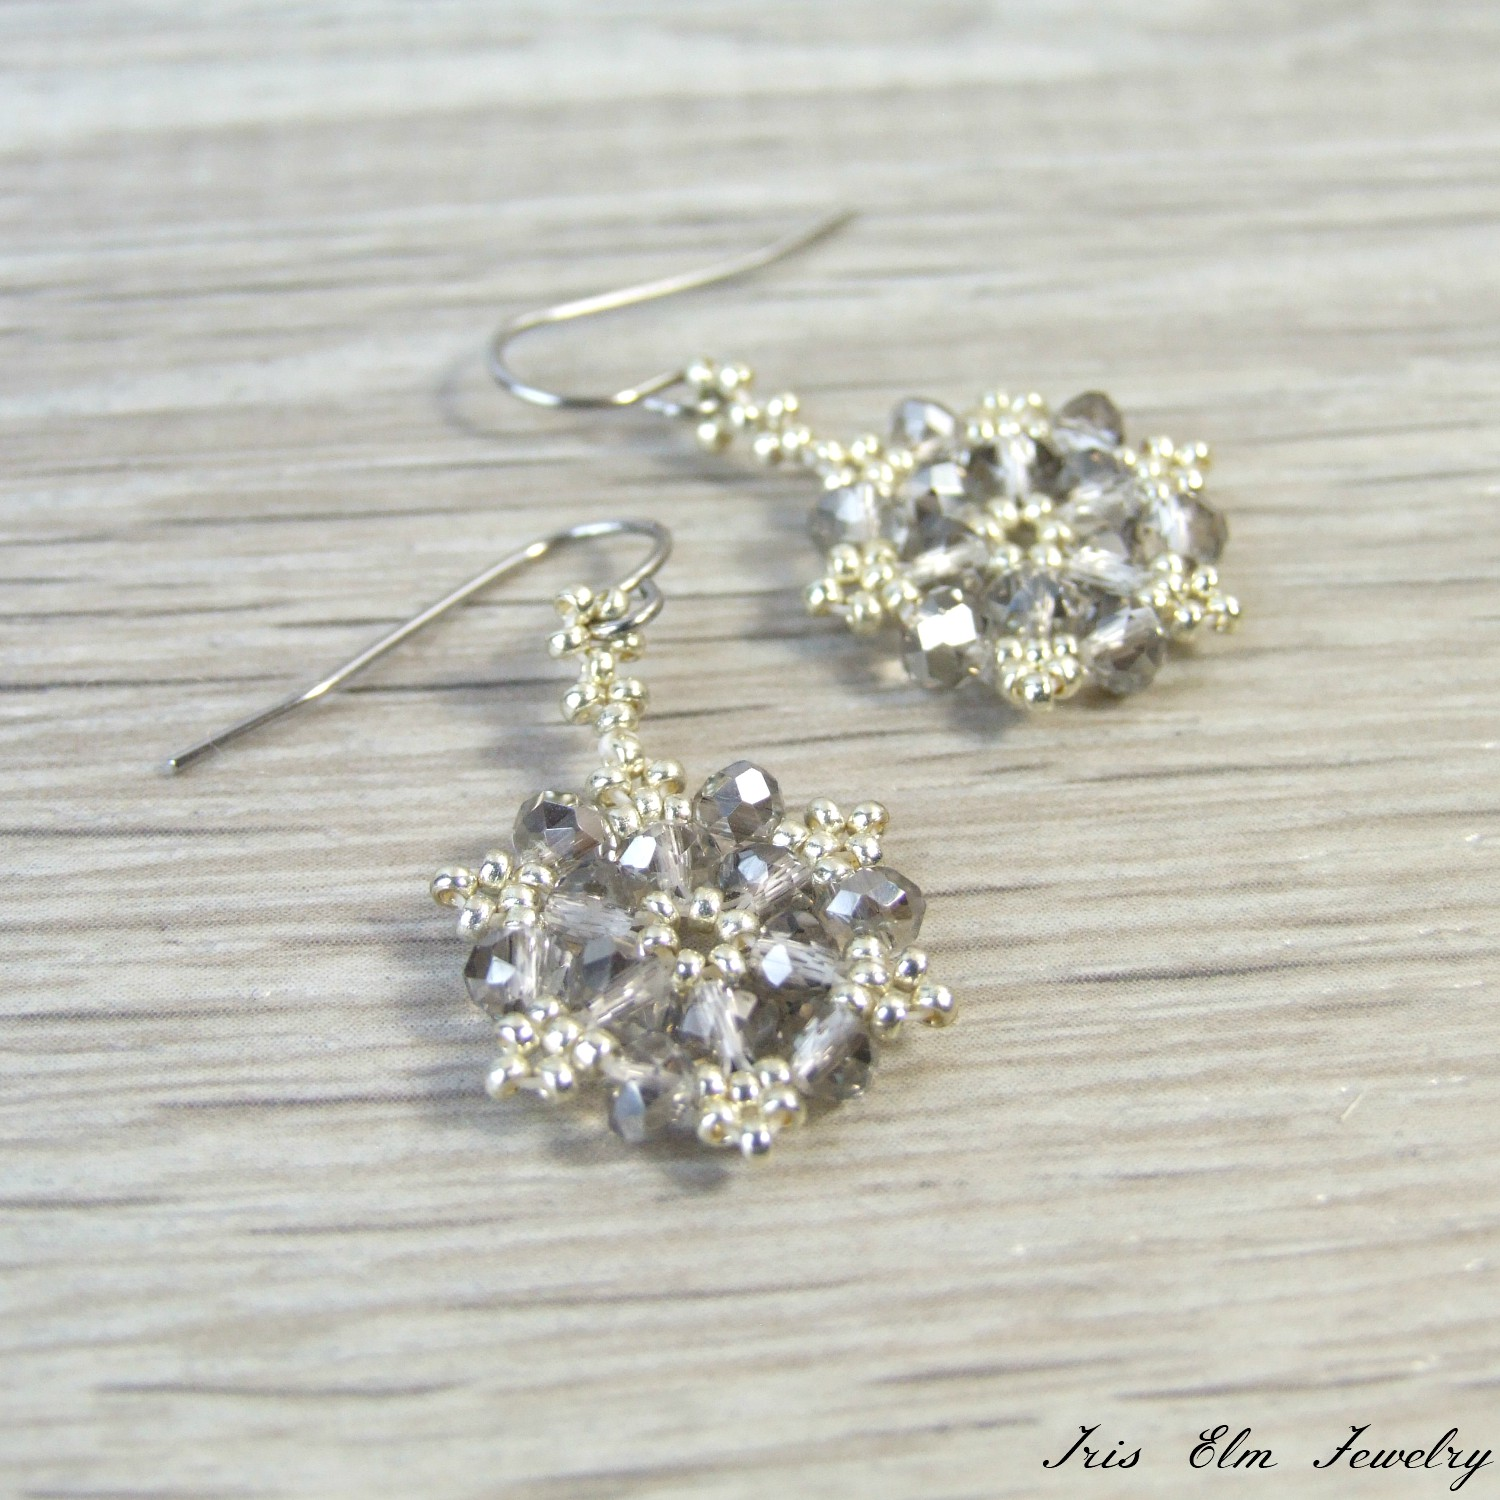 Grey & Silver Faceted Glass Beaded Snowflake Earrings